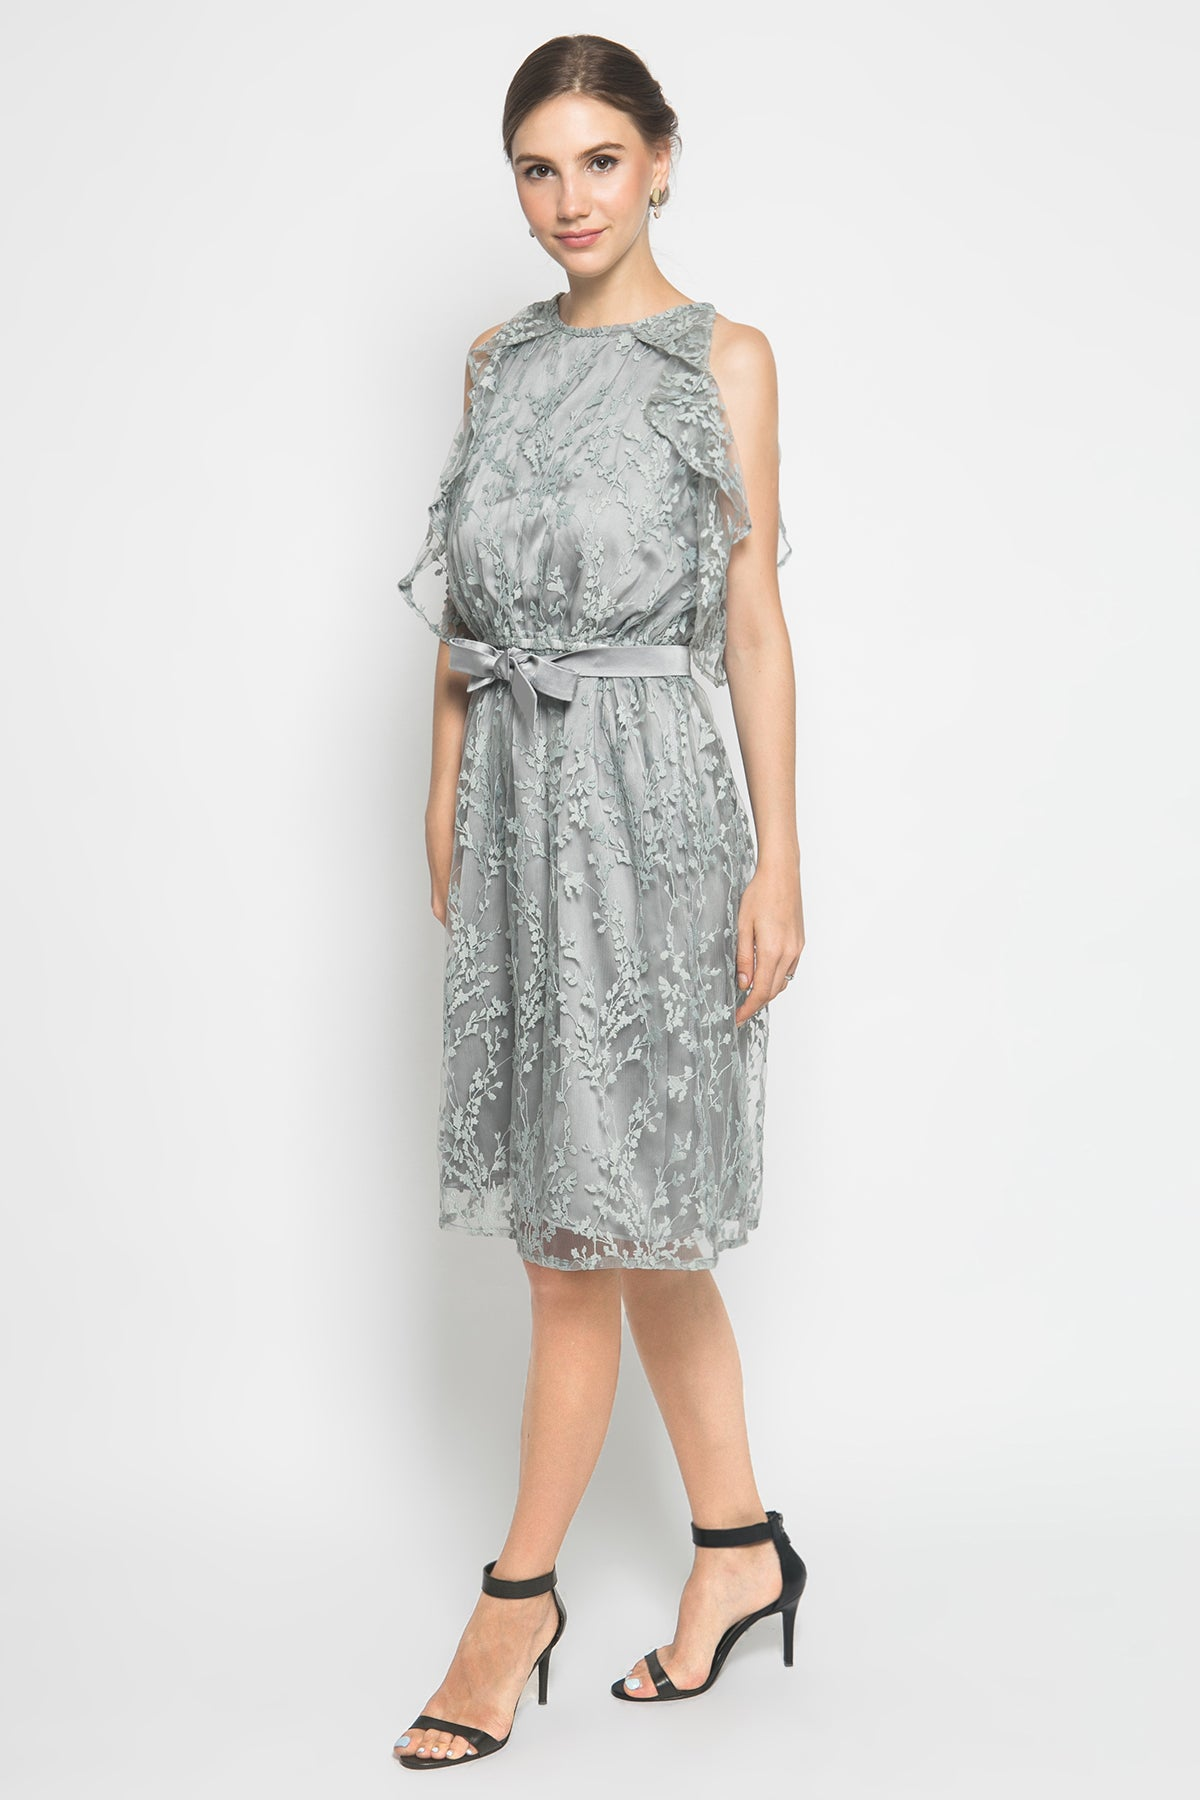 Noia Dress in Dusty Blue